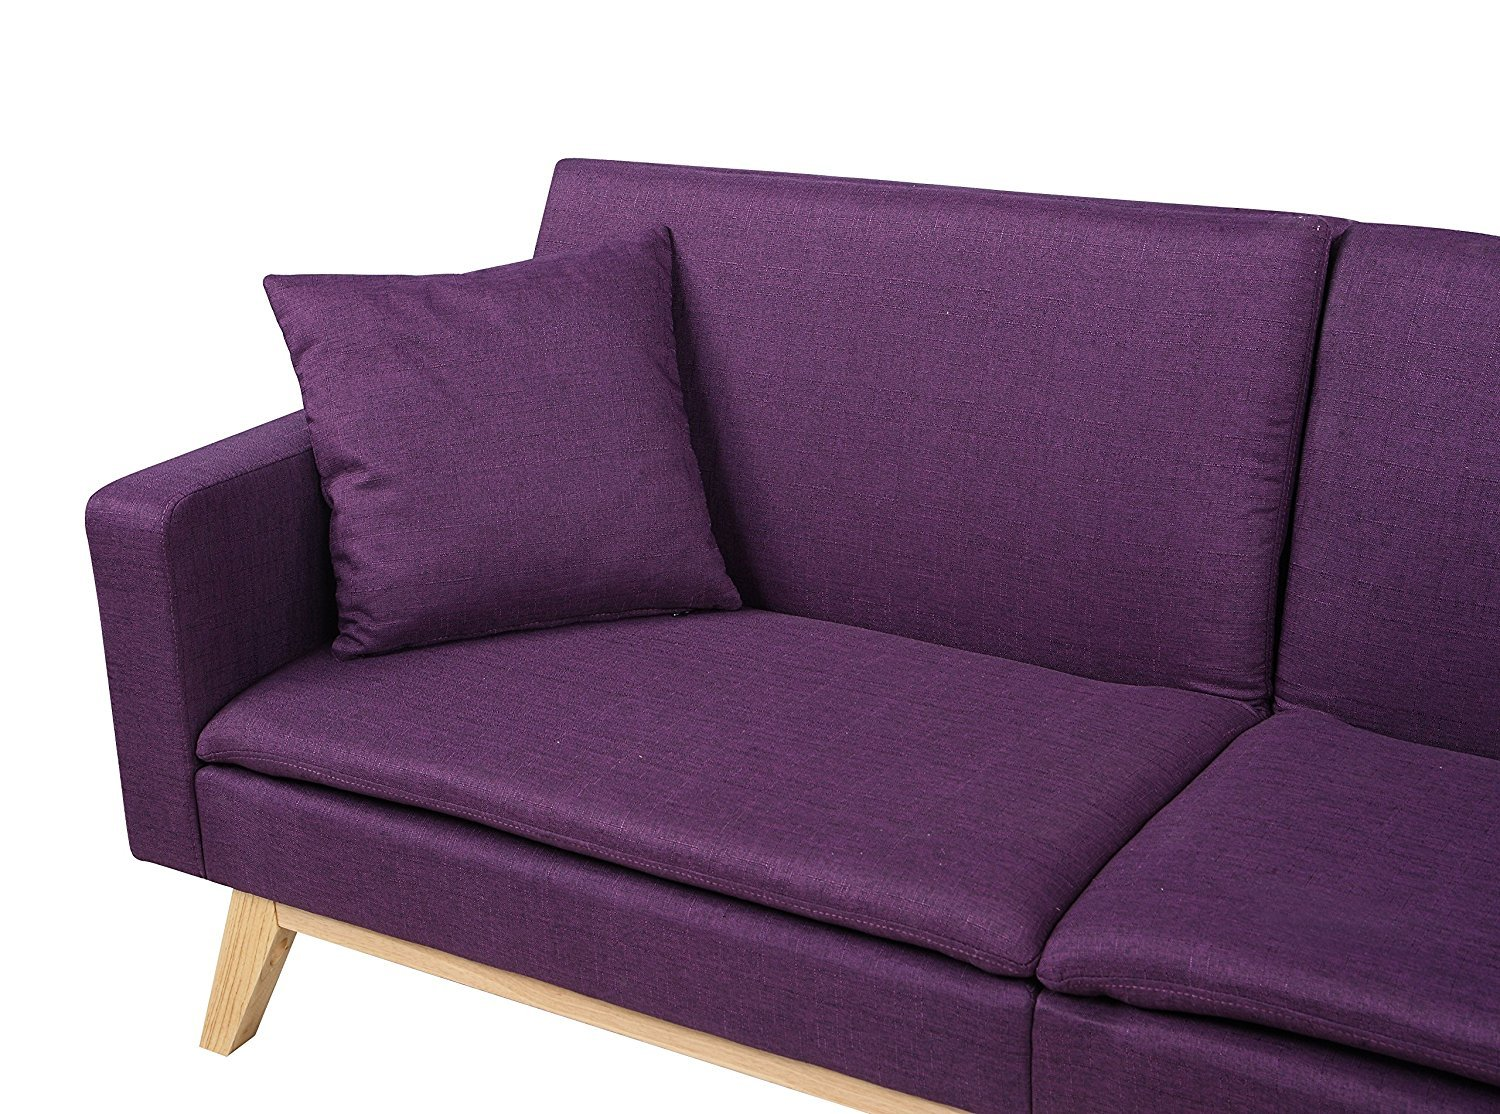 Admirable Details About Modern Tufted Sofa Linen Split Back Recliner Sleeper Futon Couch Purple Squirreltailoven Fun Painted Chair Ideas Images Squirreltailovenorg